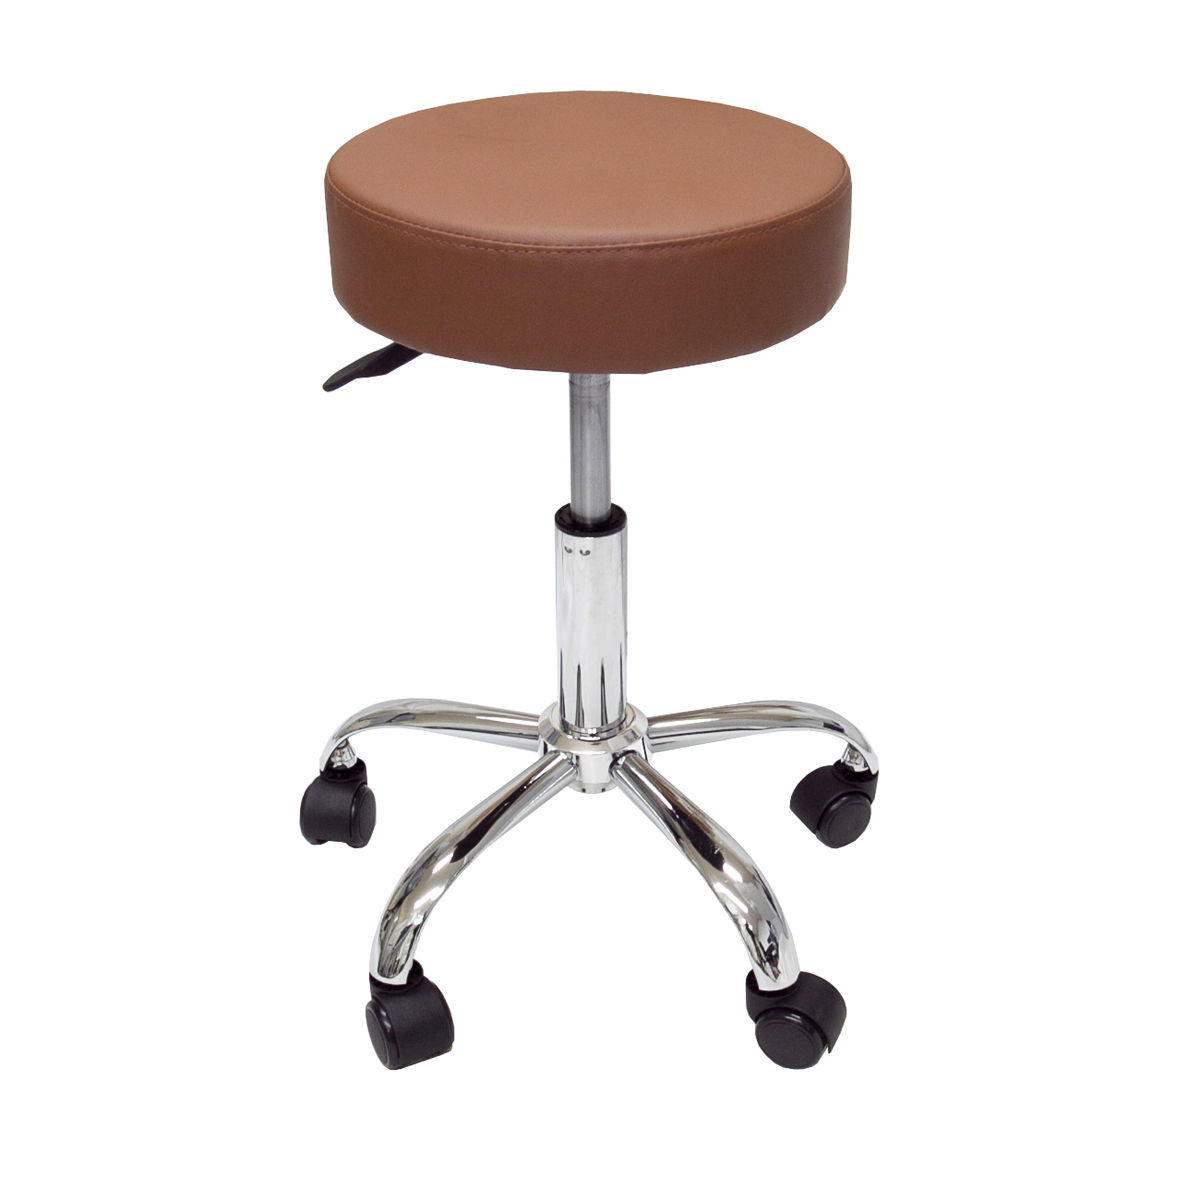 captains captain extremis en chair s stylepark by rolling